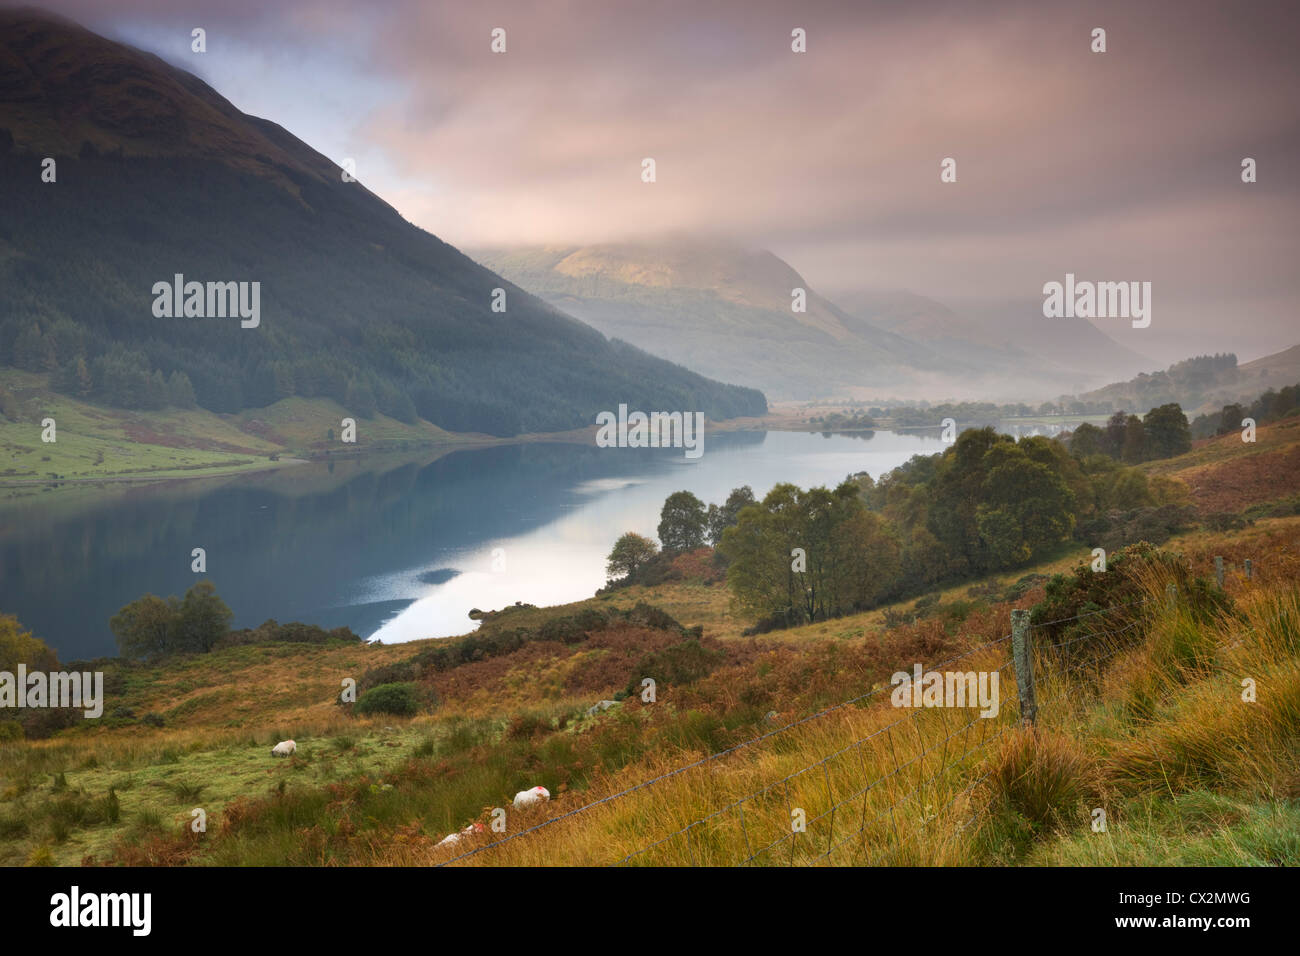 Loch Doine in the Trossachs, Stirling, Scotland. Autumn (October) 2010. - Stock Image